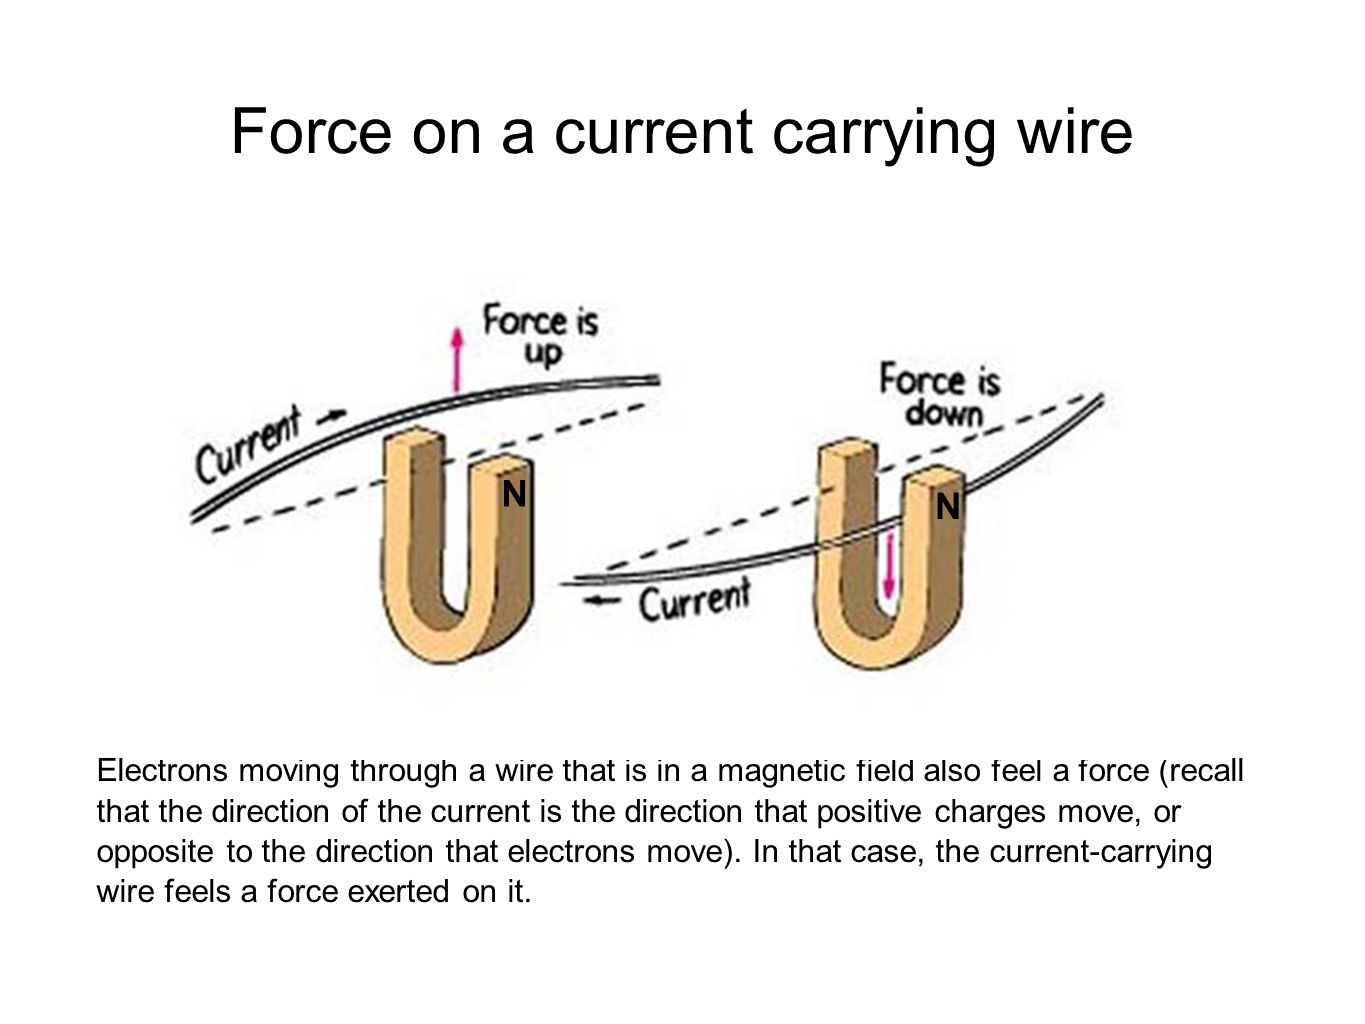 Force on a current carrying wire Electrons moving through a wire that is in a magnetic field also feel a force (recall that the direction of the current is the direction that positive charges move, or opposite to the direction that electrons move).